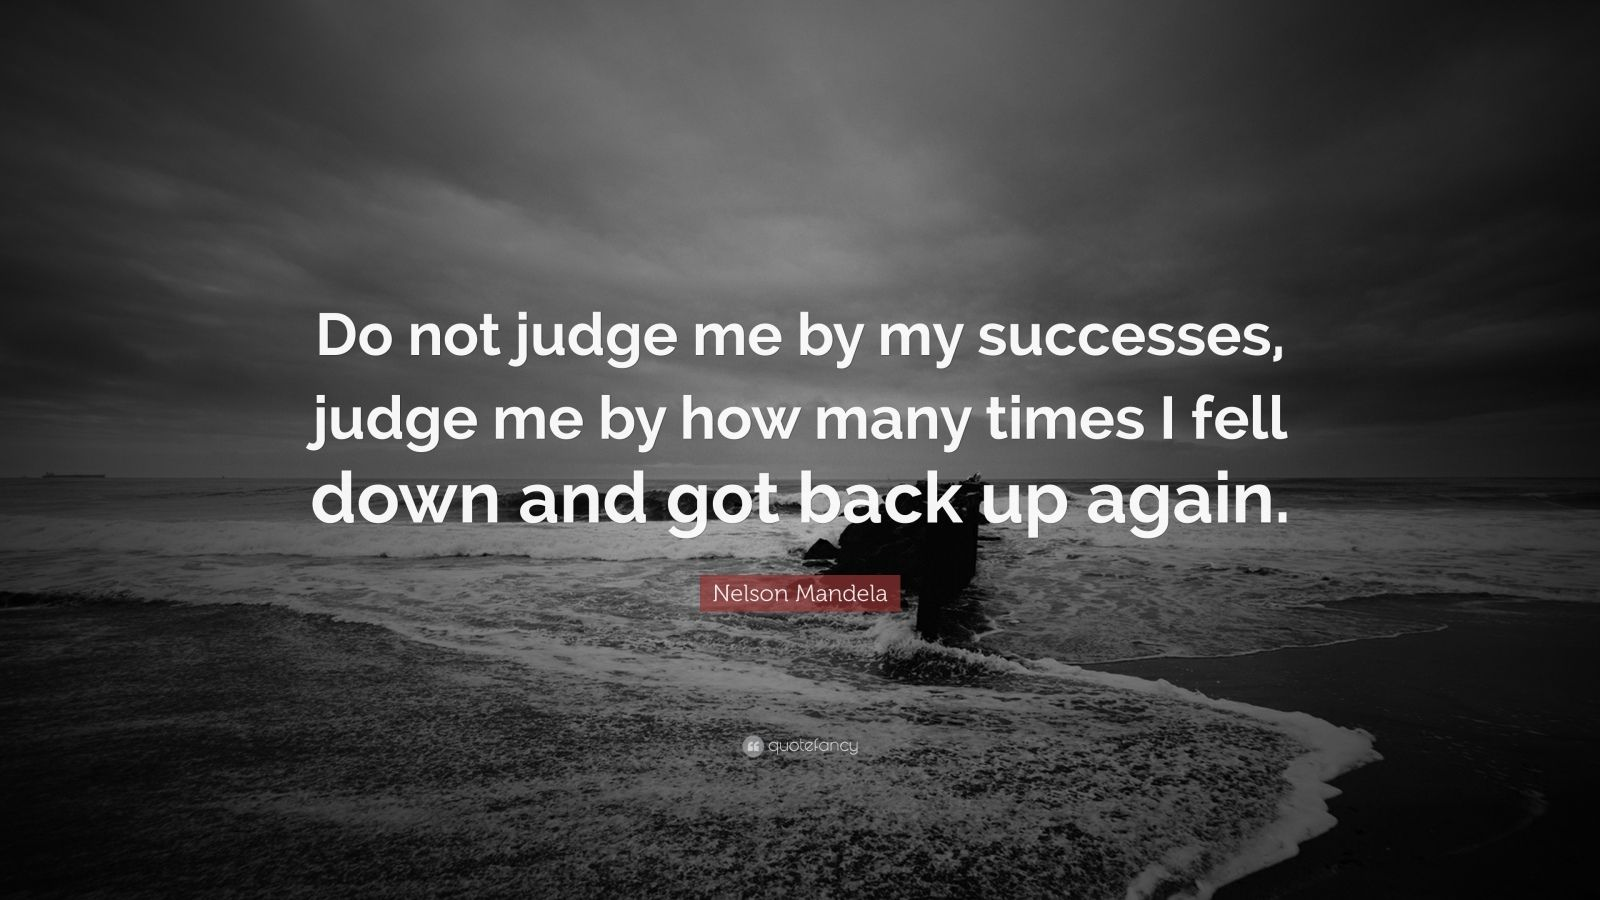 Got Quotes Wallpapers Nelson Mandela Quote Do Not Judge Me By My Successes